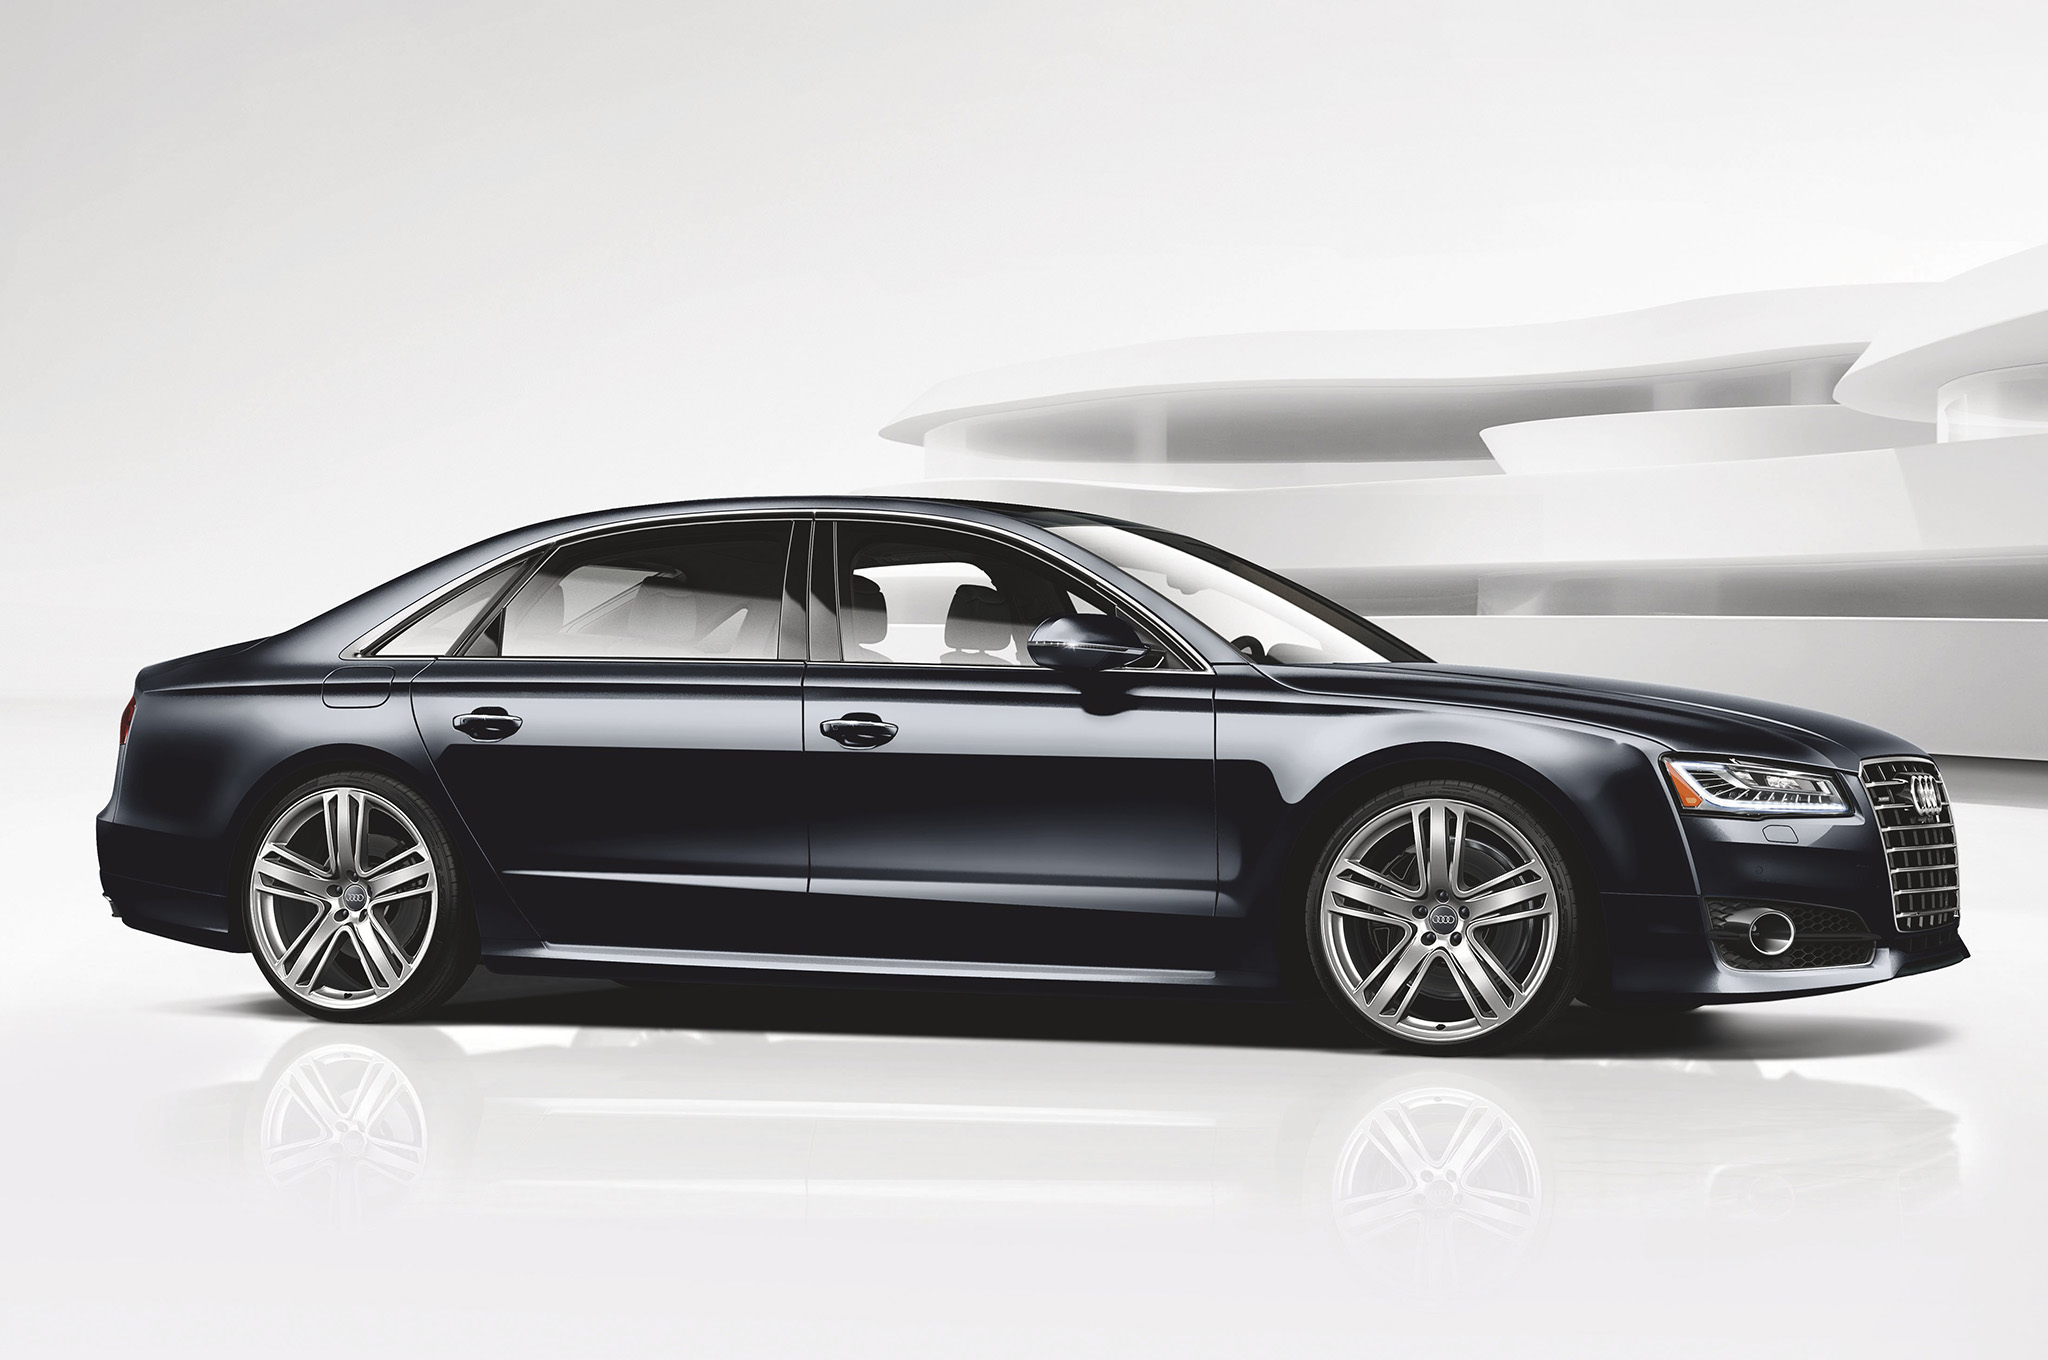 2016 audi a8 l gains 4 0t sport model with extra power, visual tweaks audi a8l exterior audi a8l engine diagram #15